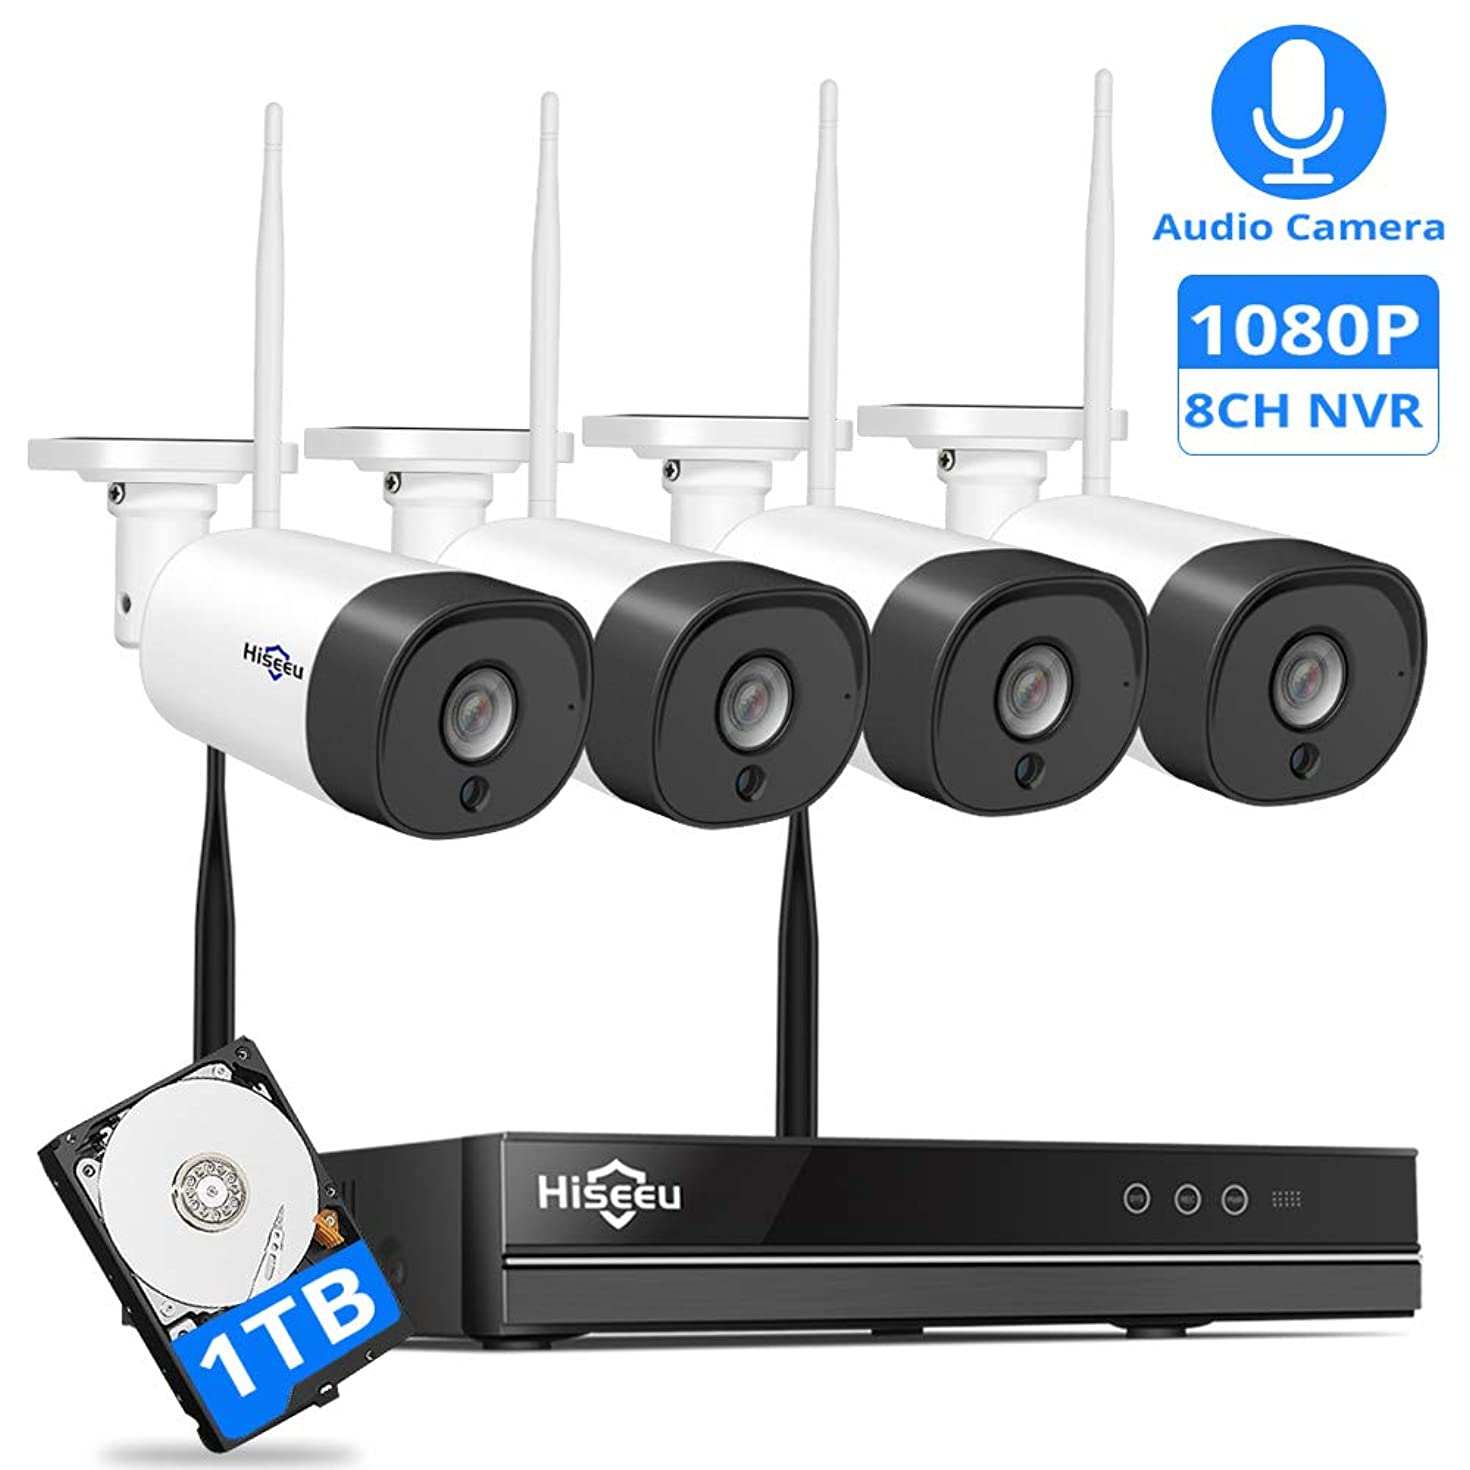 [Expandable 8CH] Wireless Security Camera System with Audio,Hiseeu 8CH 1080P NVR 4Pcs 1080P 2MP Night Vision IP Surveillance Cameras Home Outdoor Plug&Play,Easy Remote View,1TB HDD Preinstalled